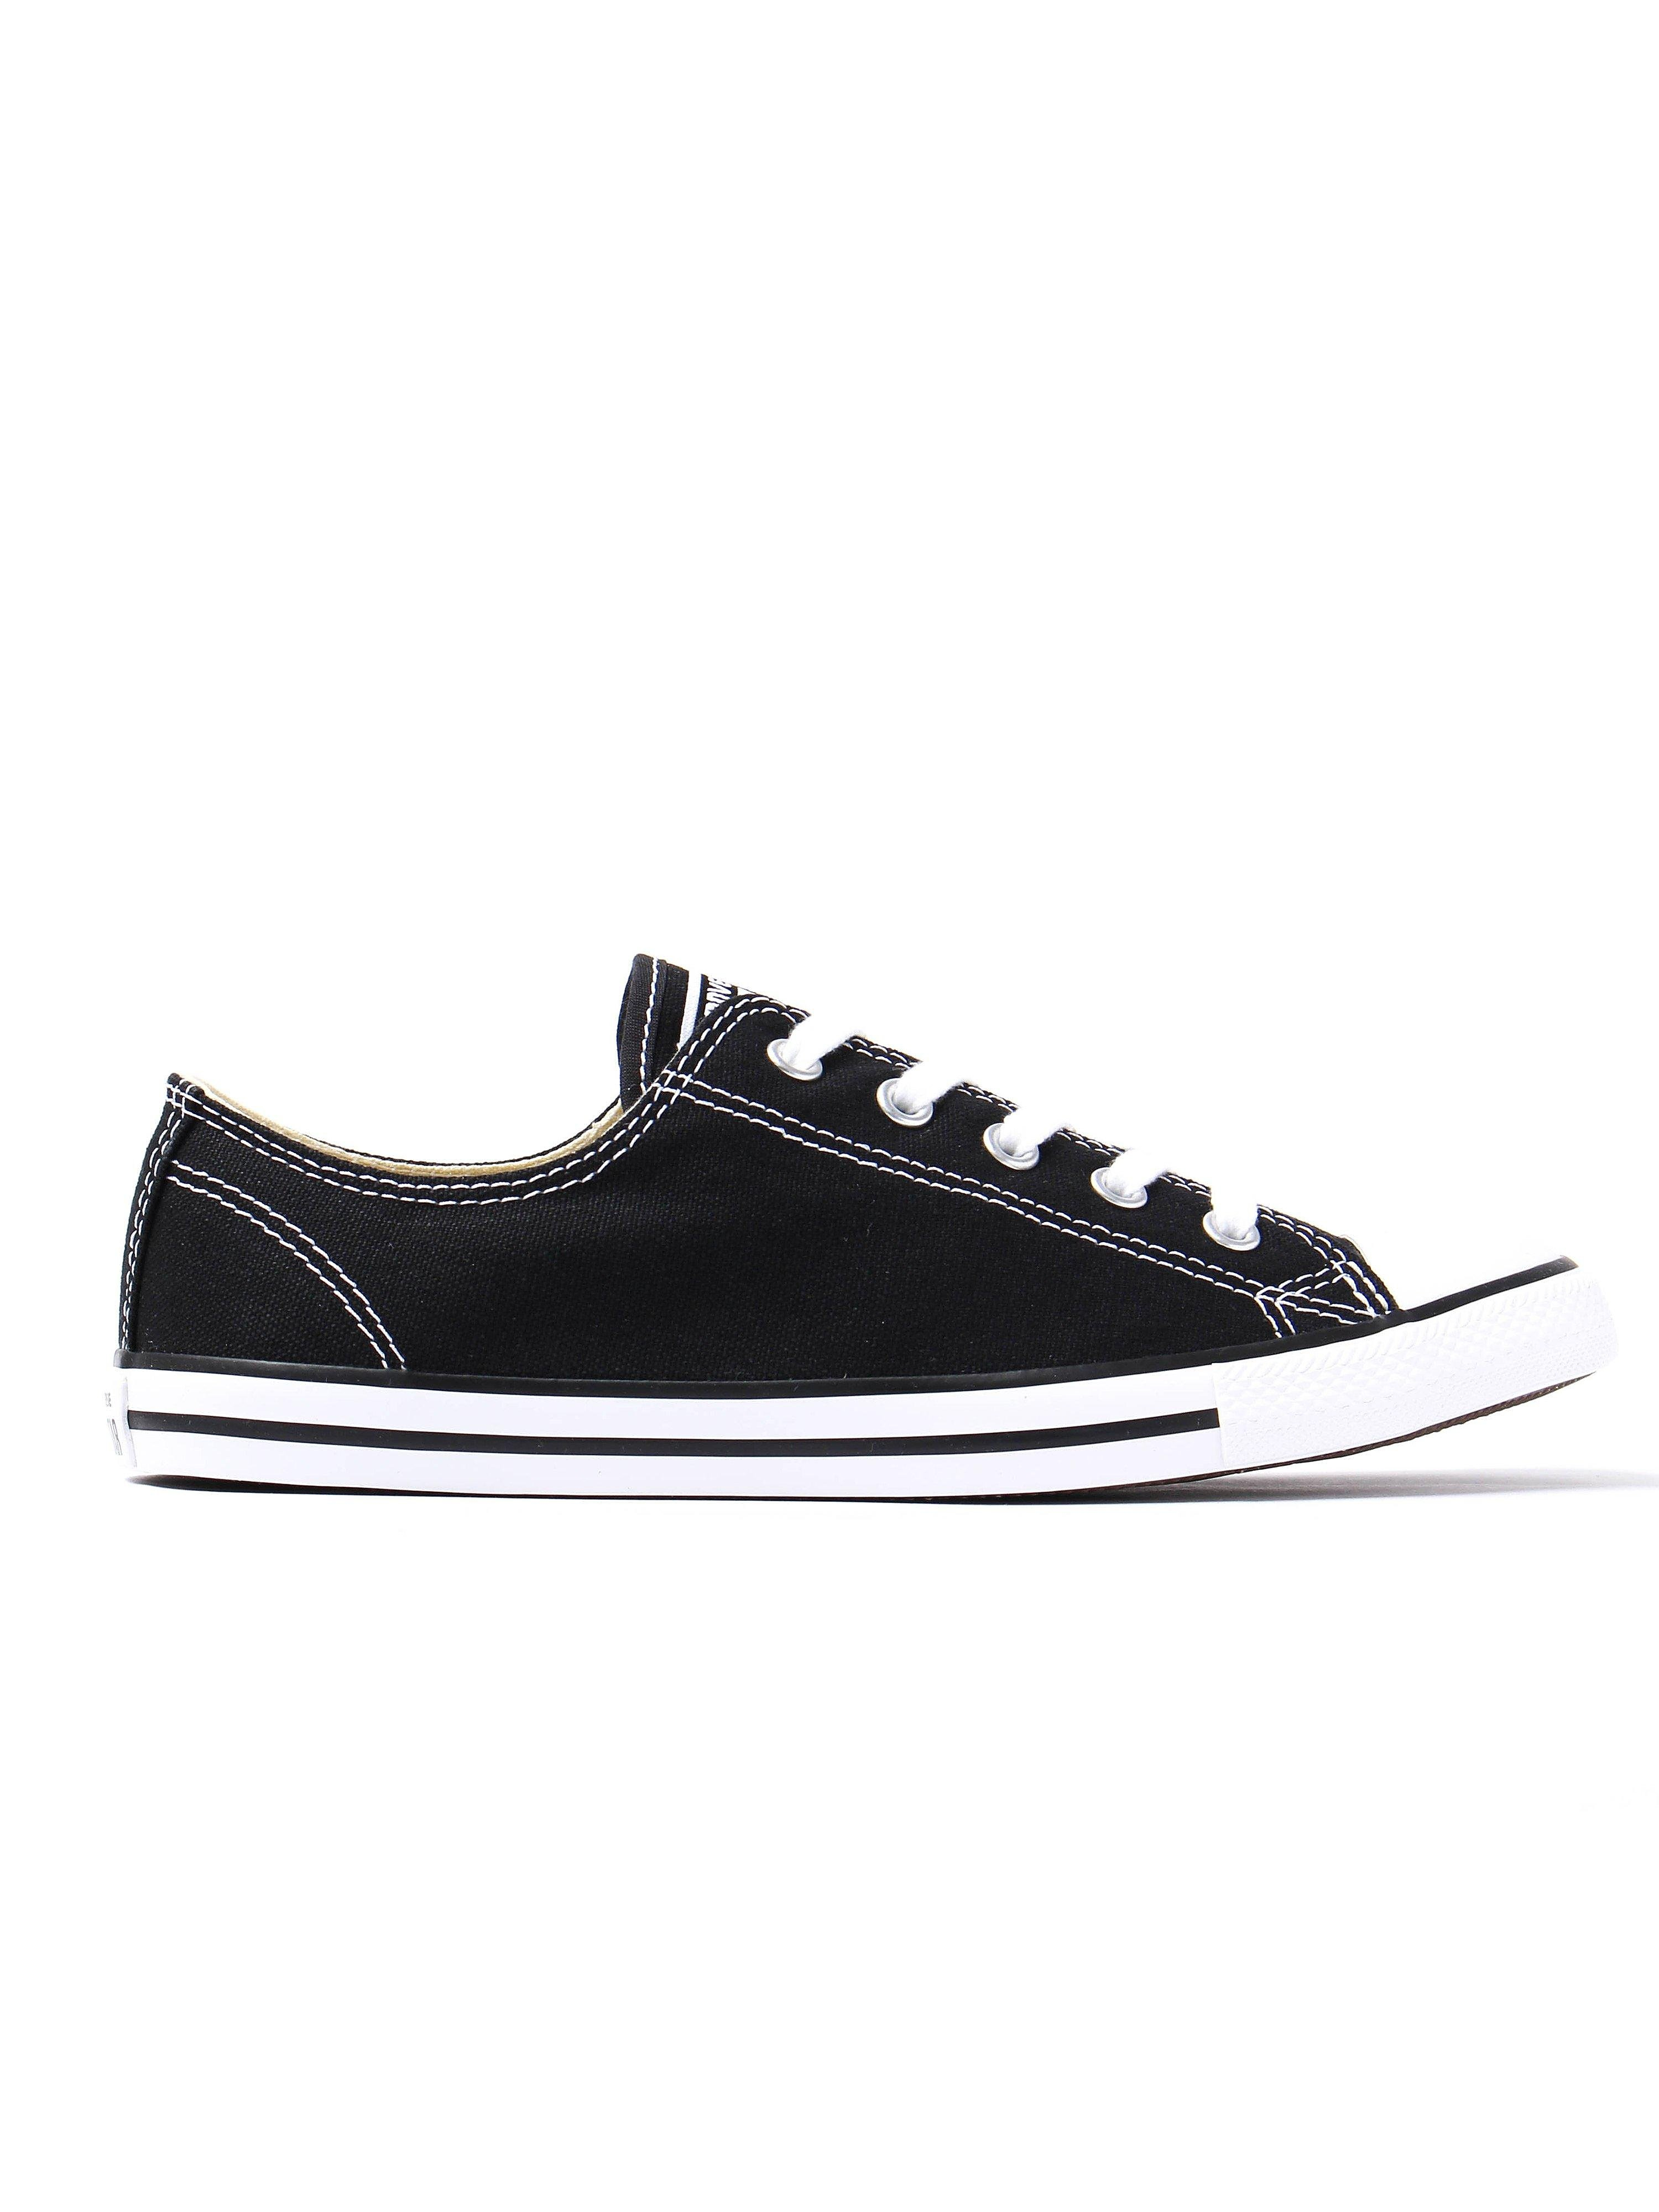 Converse Women's Chuck Taylor All Star Dainty Trainers - Black